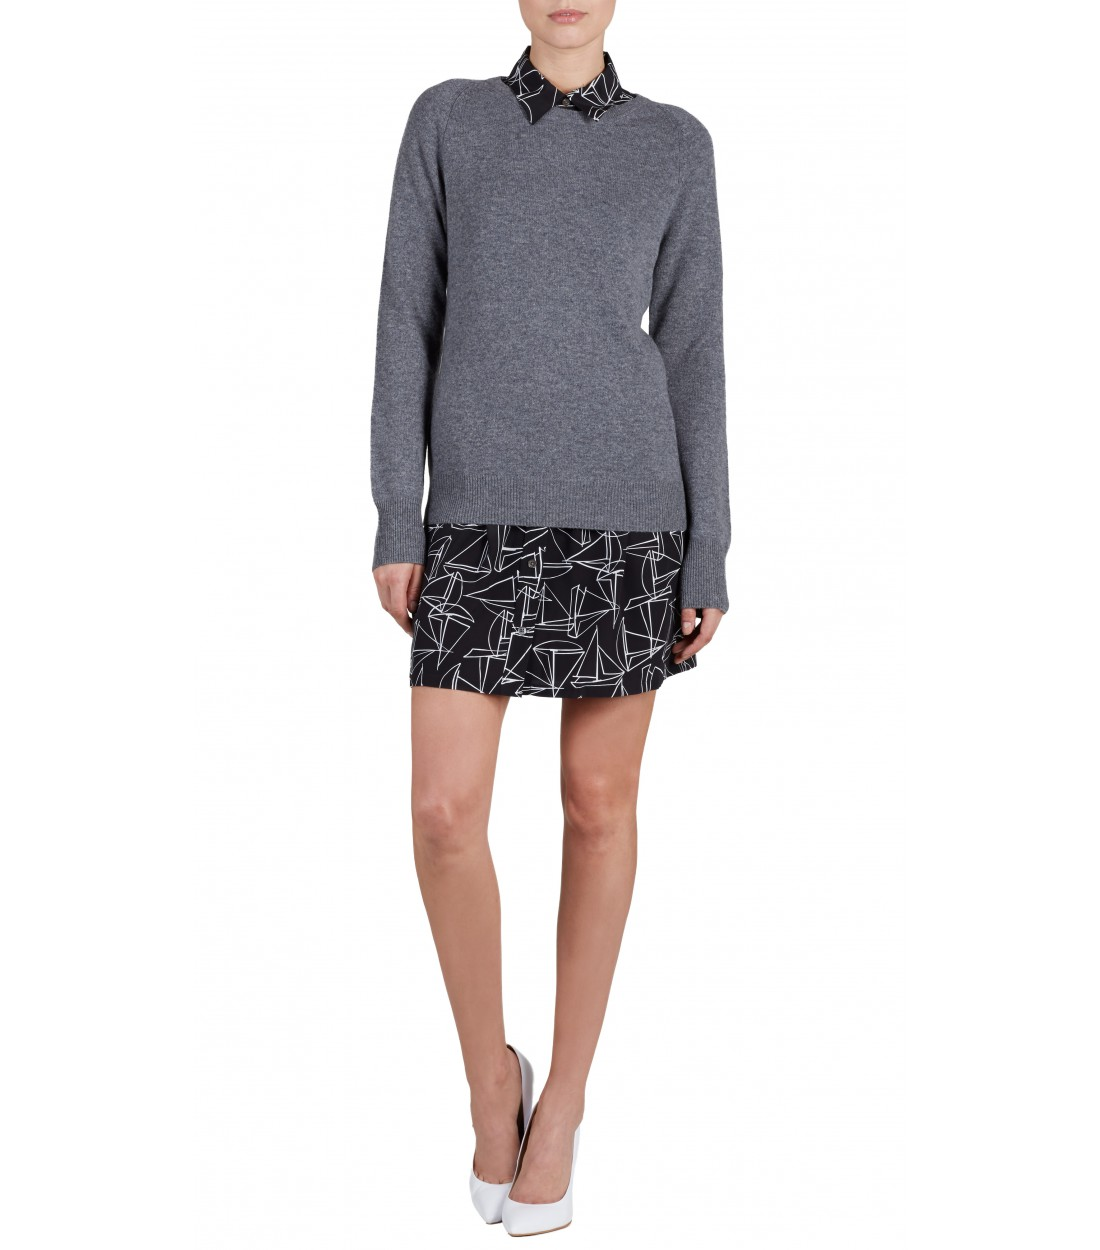 EQUIPMENT Sloane Crewneck Heather Grey | Women's Cashmere Sweater